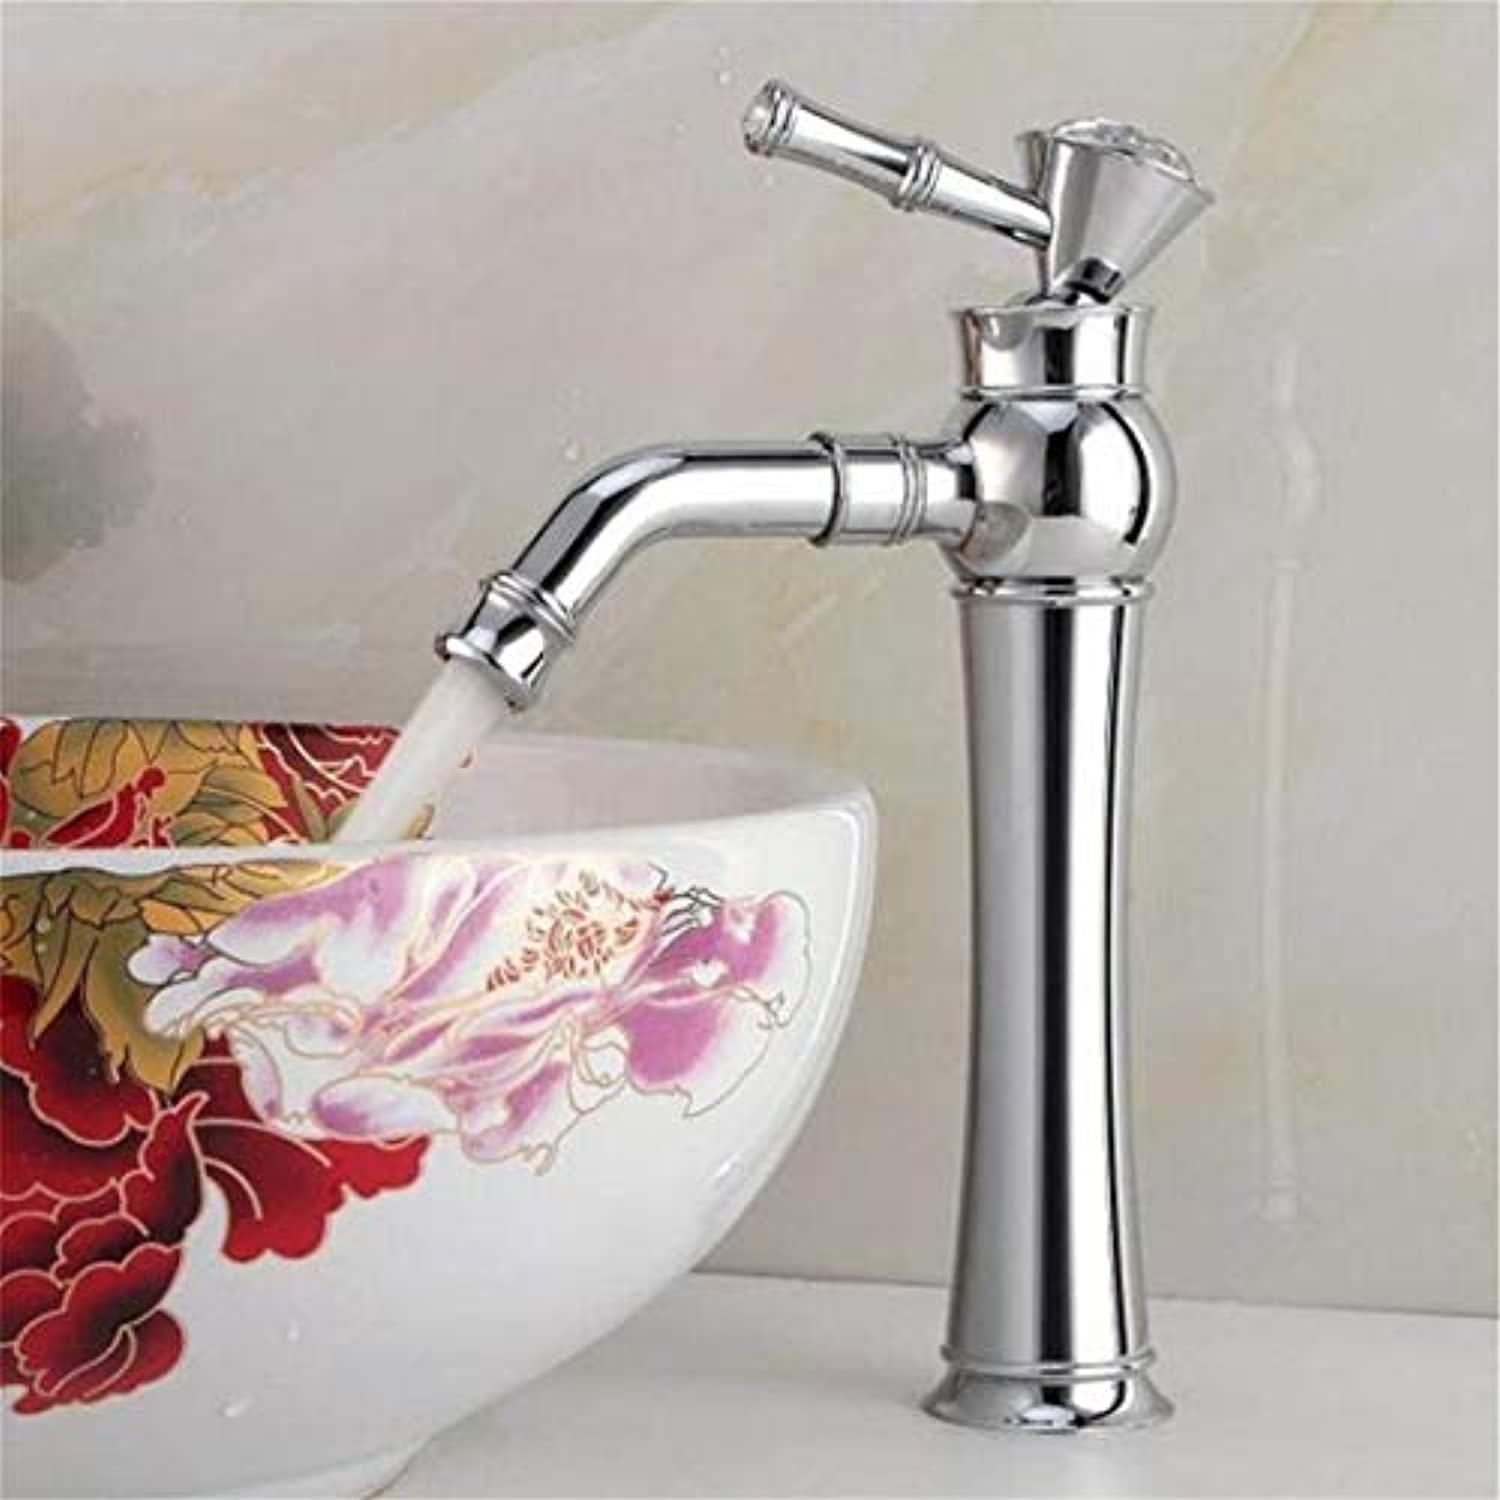 Modern High Quality Vintage Faucetmodern Chrome Plated Single Hole Washbasin Artistic Basin Hot And Cold Water Faucet